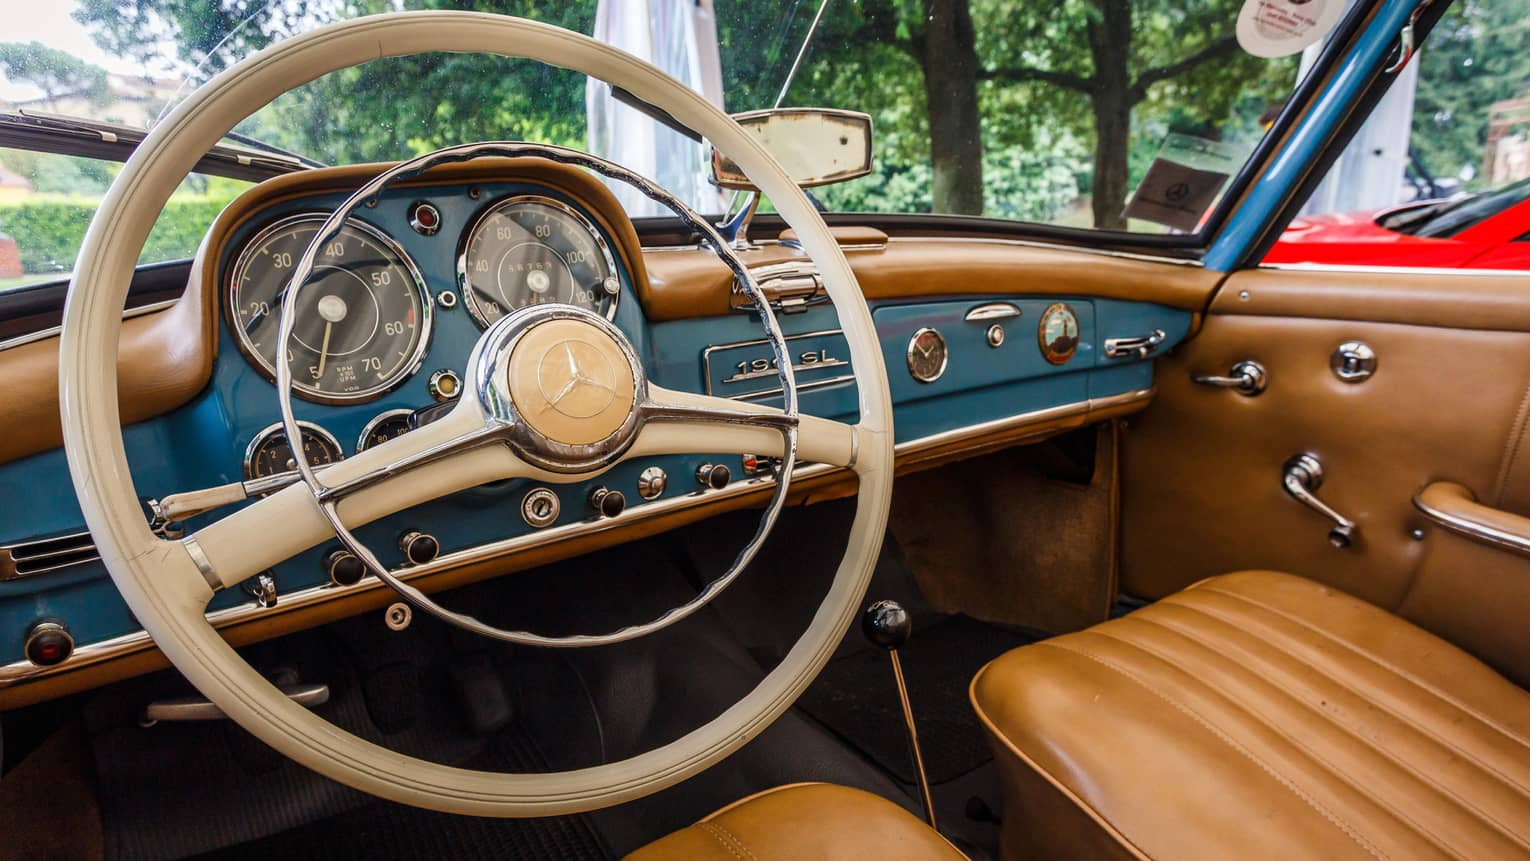 Wheel, dashboard, leather seats of classic luxury car